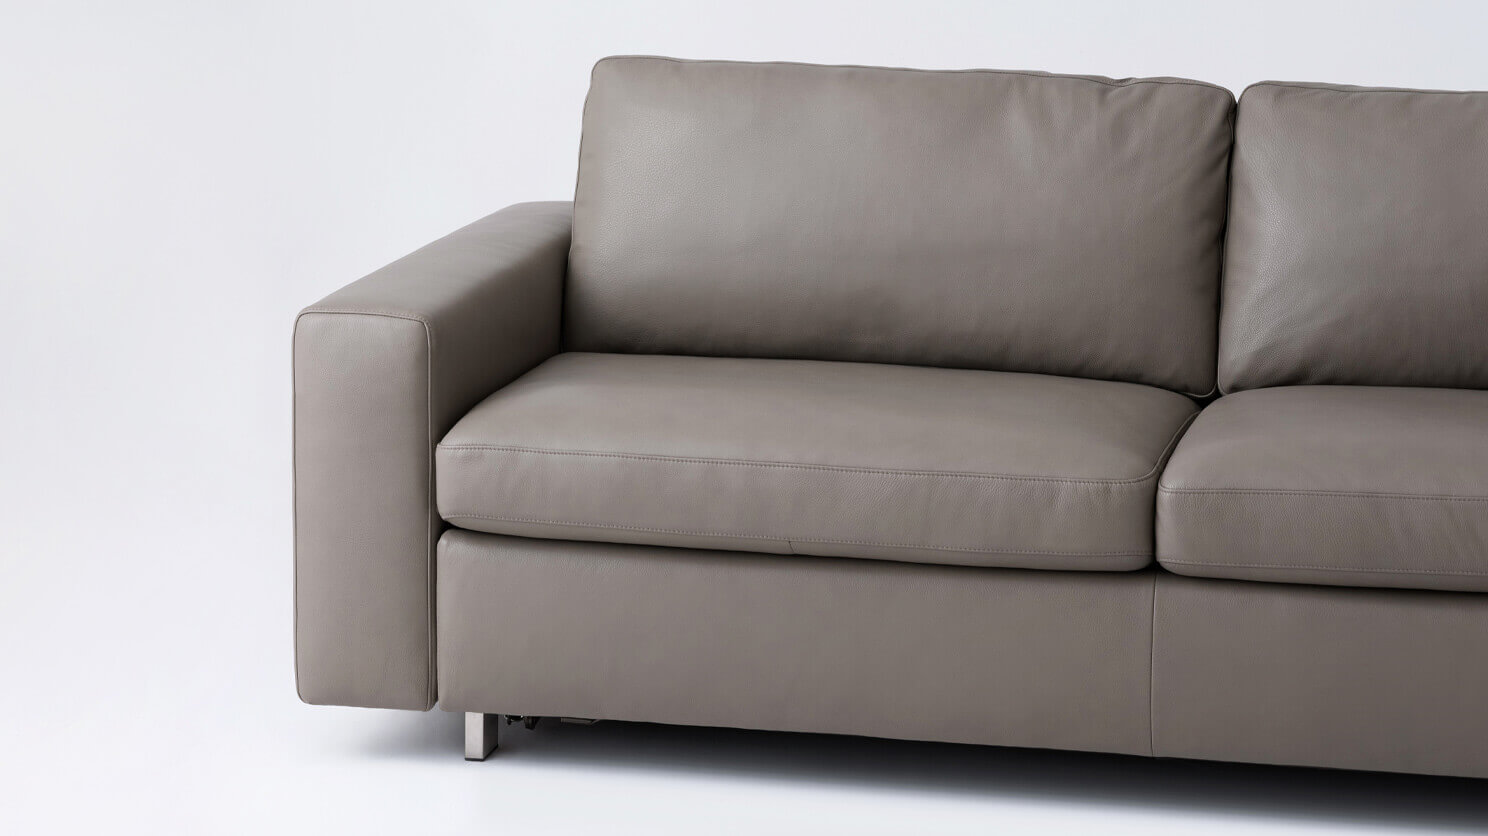 Reeva Sofa Bed Queen Size Mattress Leather M Collection Home